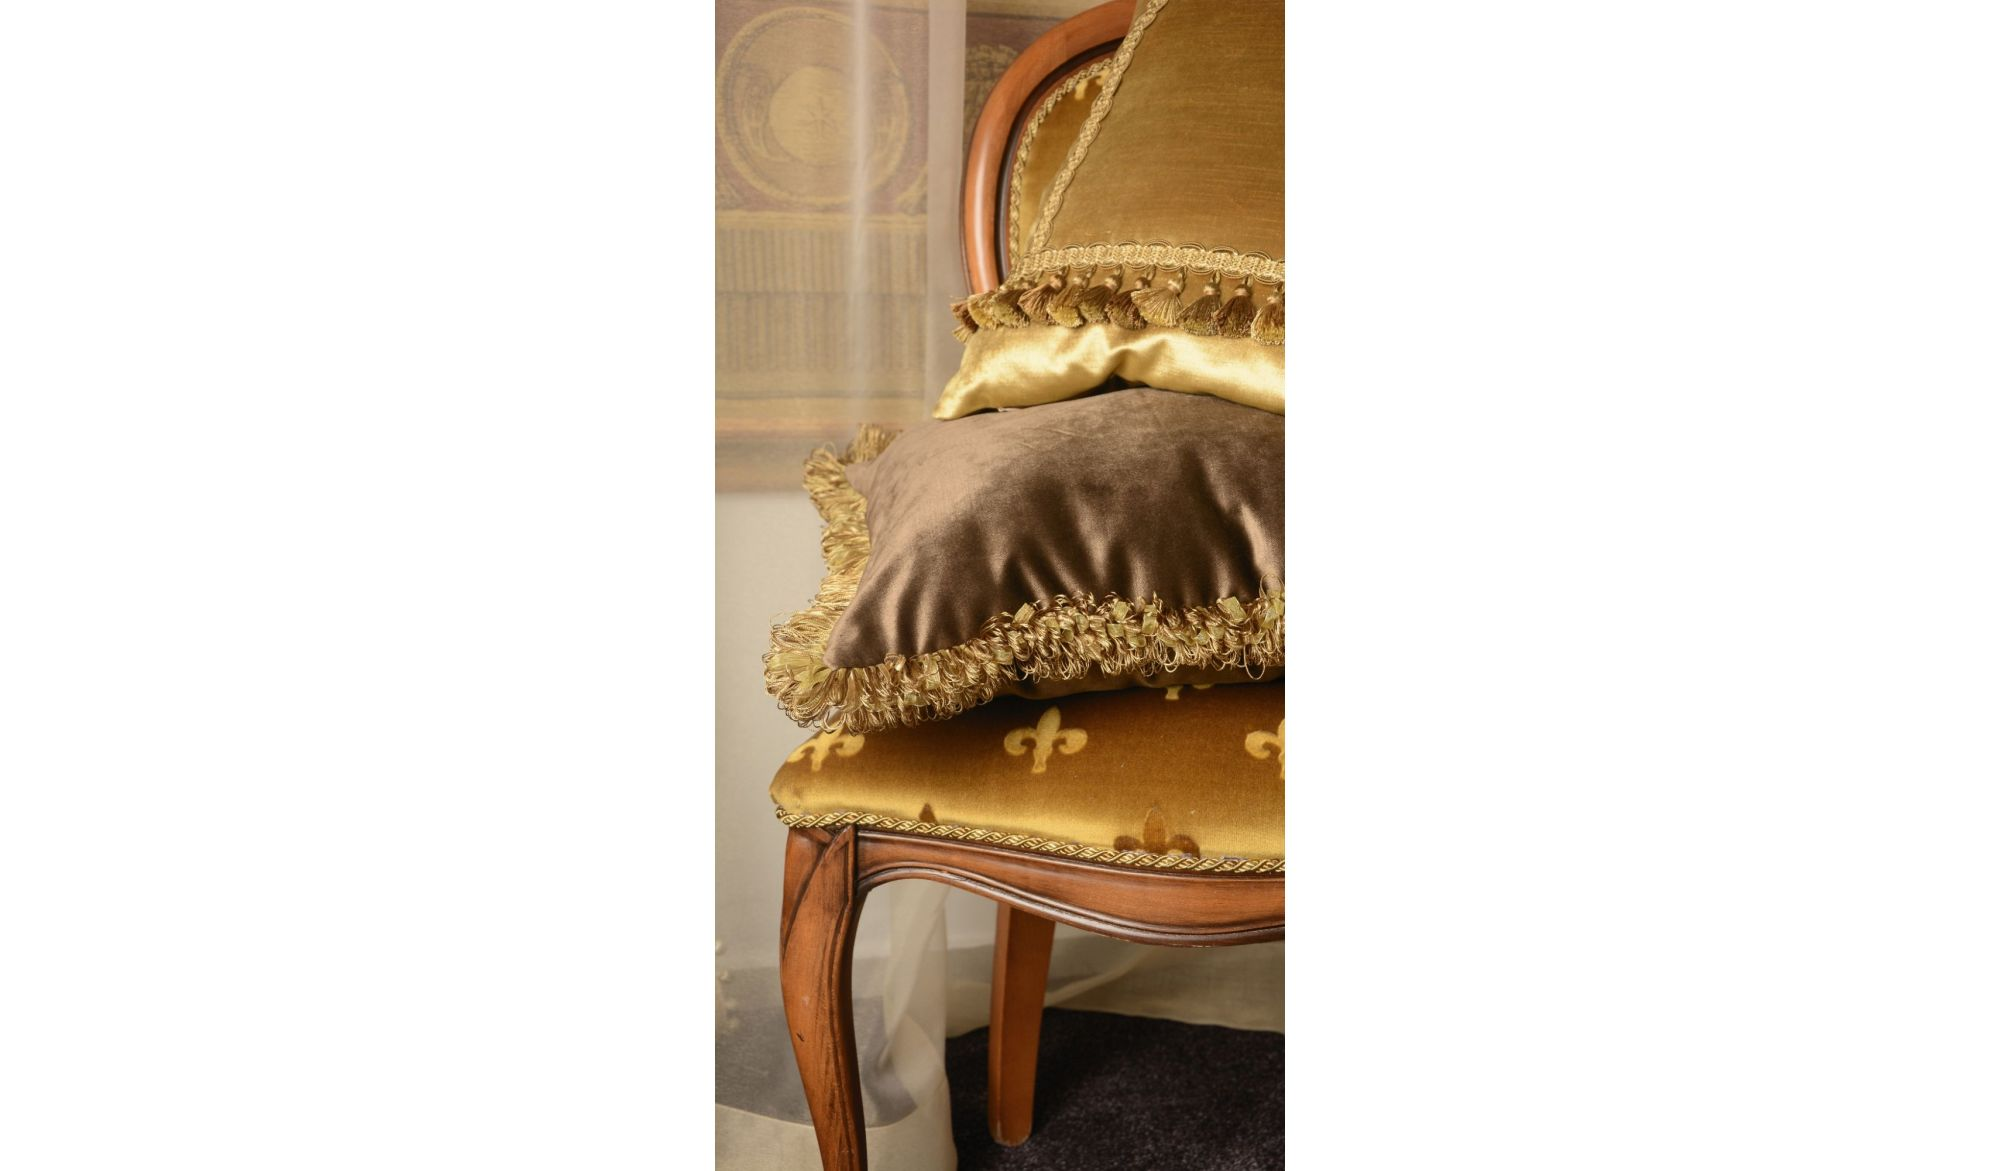 BIG GIMP AG.972 Toffee - Trimmings alt_pasmanteria_kolor_toffee decorative Upholstery - Visualisation